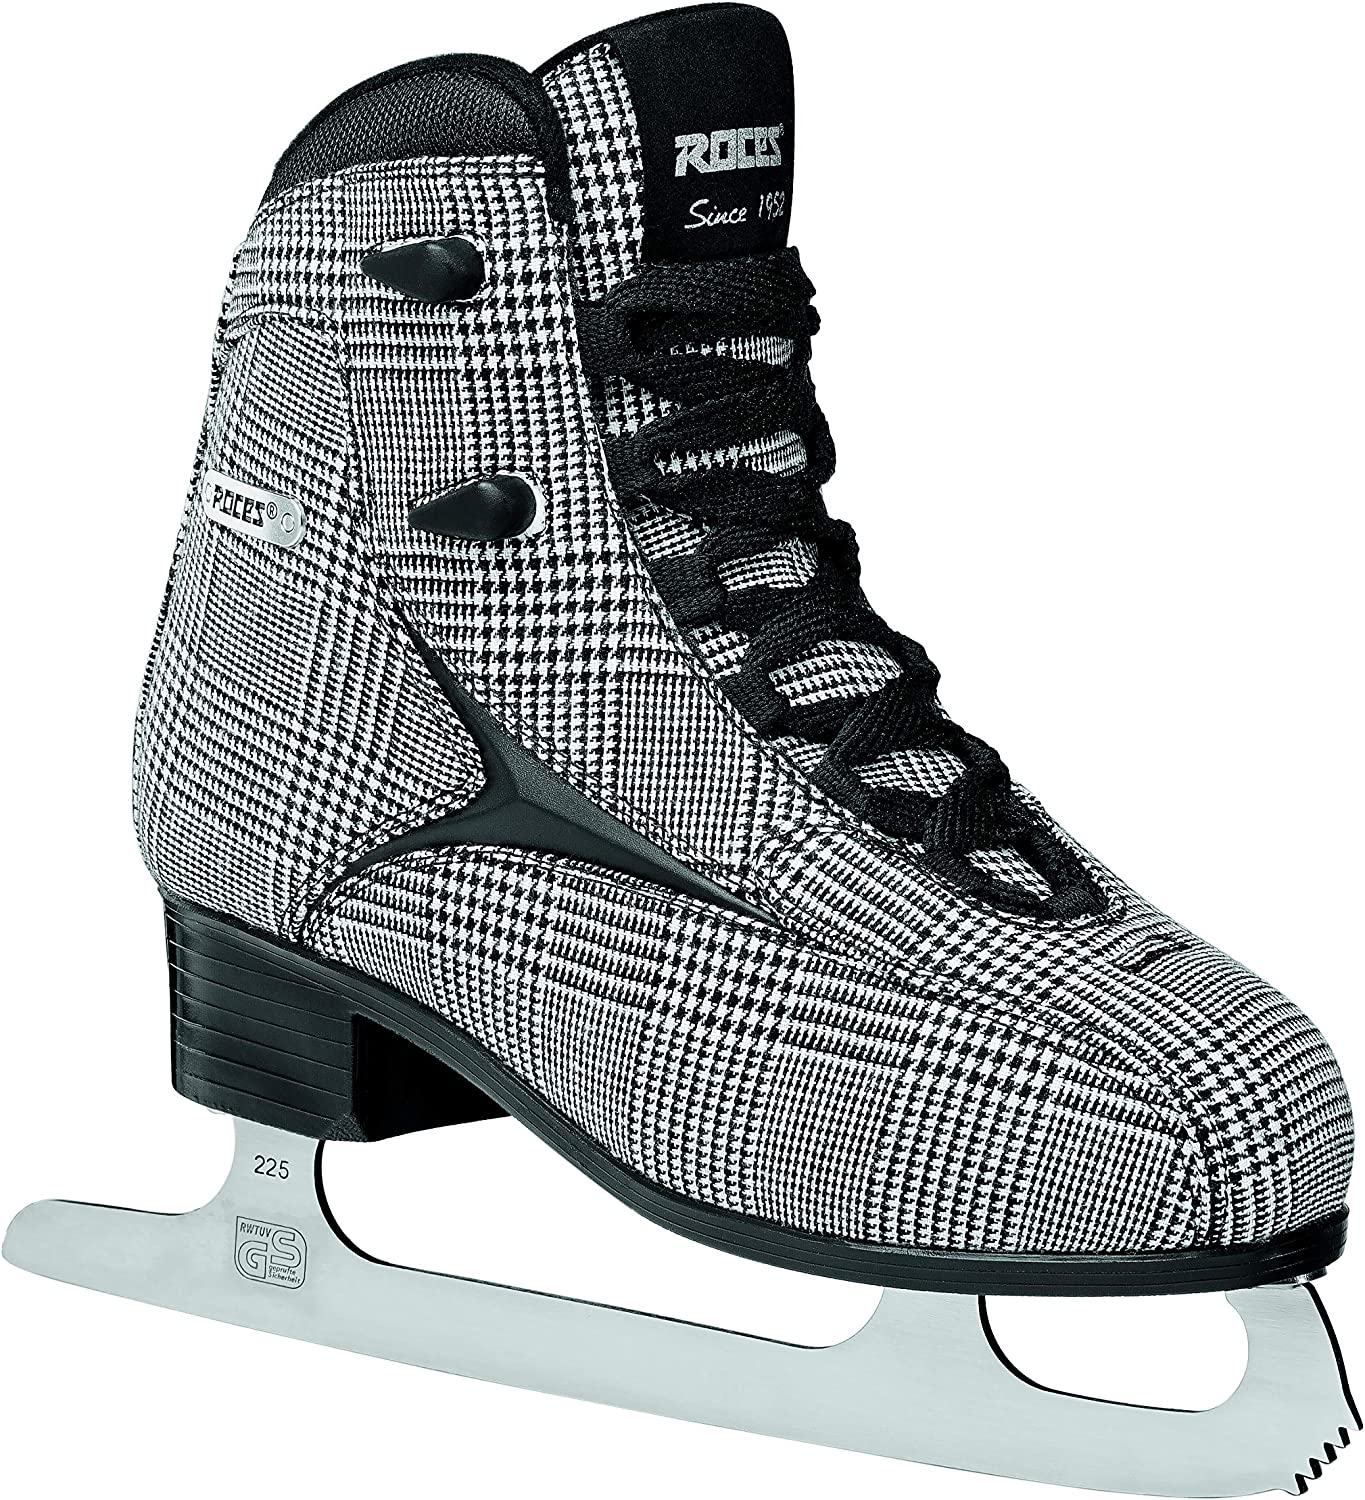 Roces BRITS Safety and trust Popular shop is the lowest price challenge Women's Ice Skates Silver - White Check Black